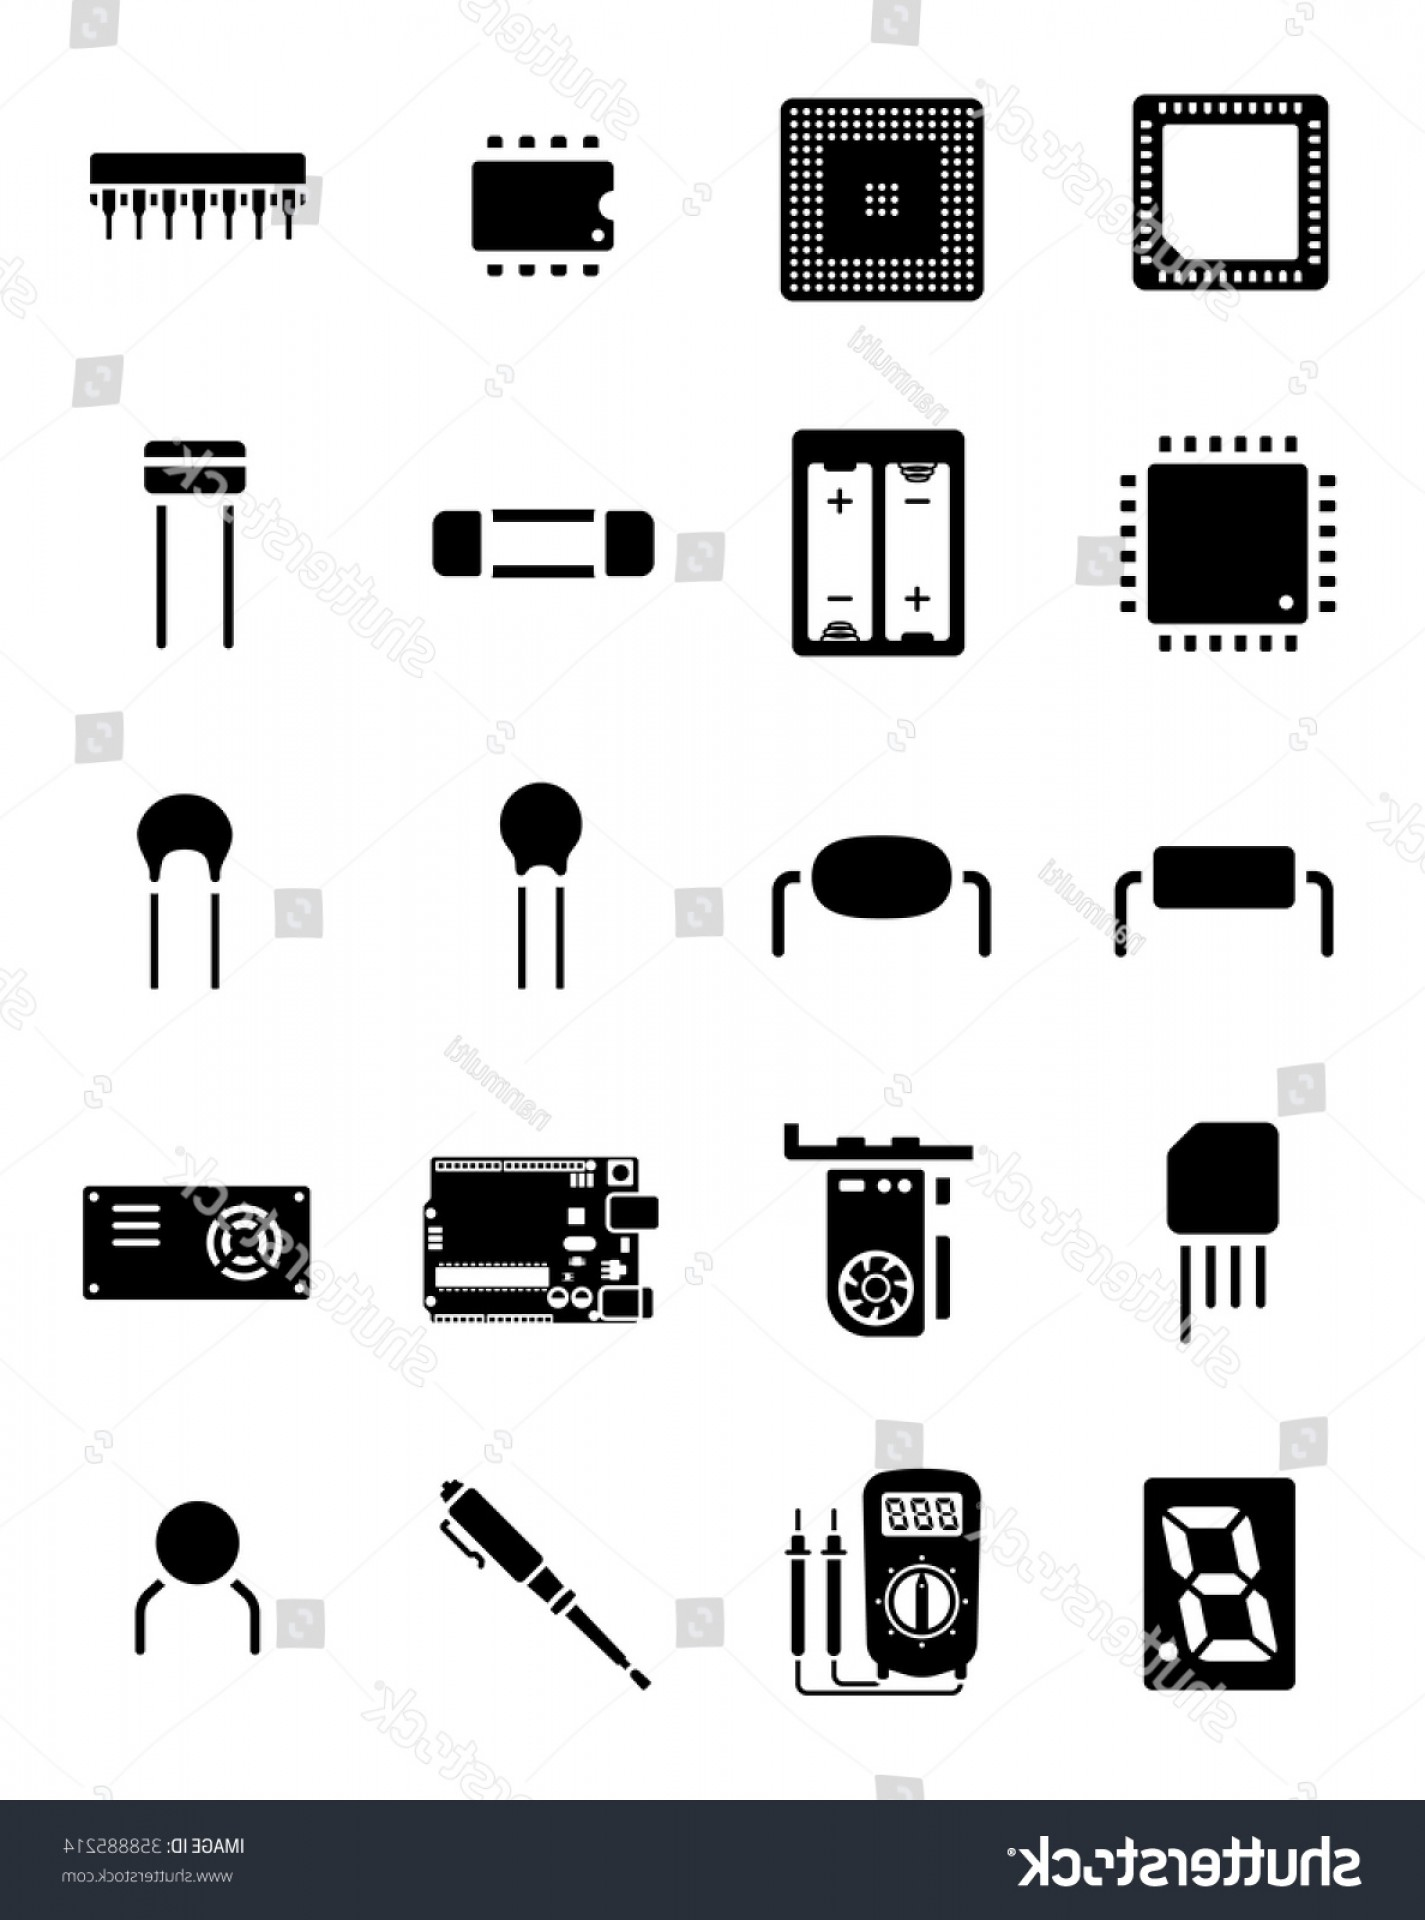 Arduino Vector Png: Arduino Chip Electronics Component Icon Set